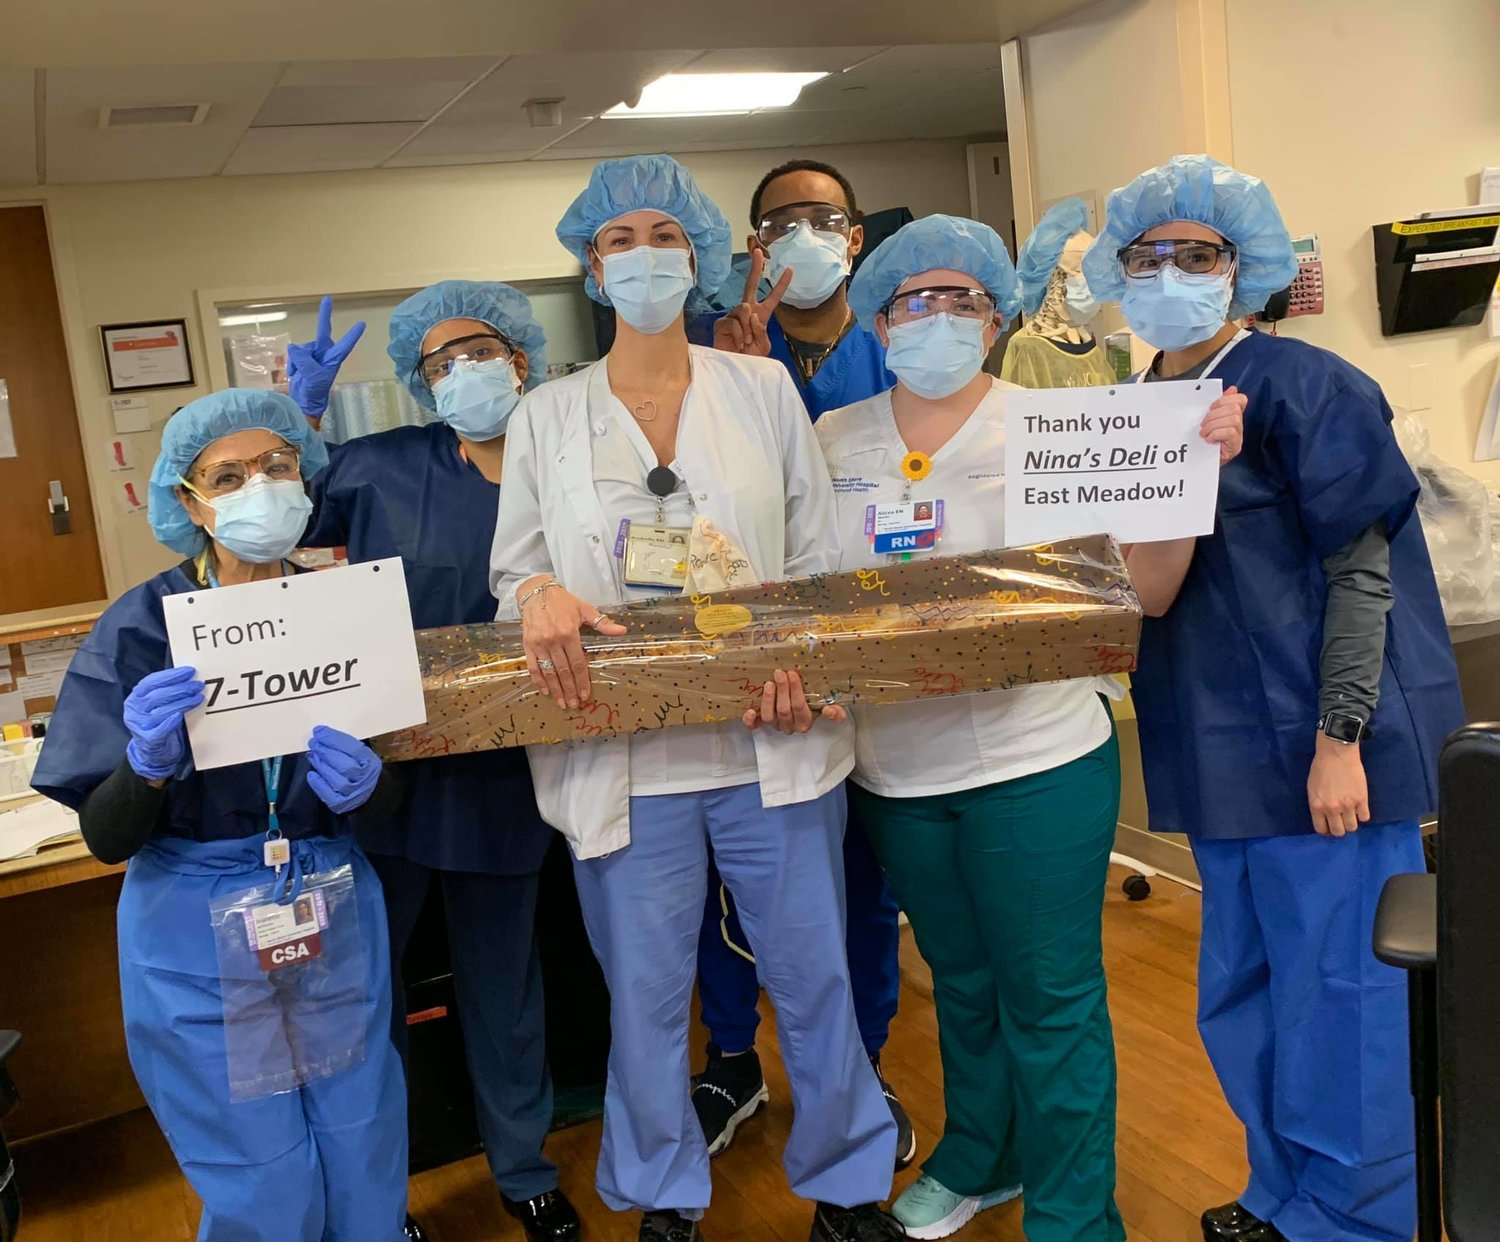 Staff members at North Shore University Hospital Manhasset got ready for a meal donated to them courtesy of Nina's Deli and Caterers in East Meadow.